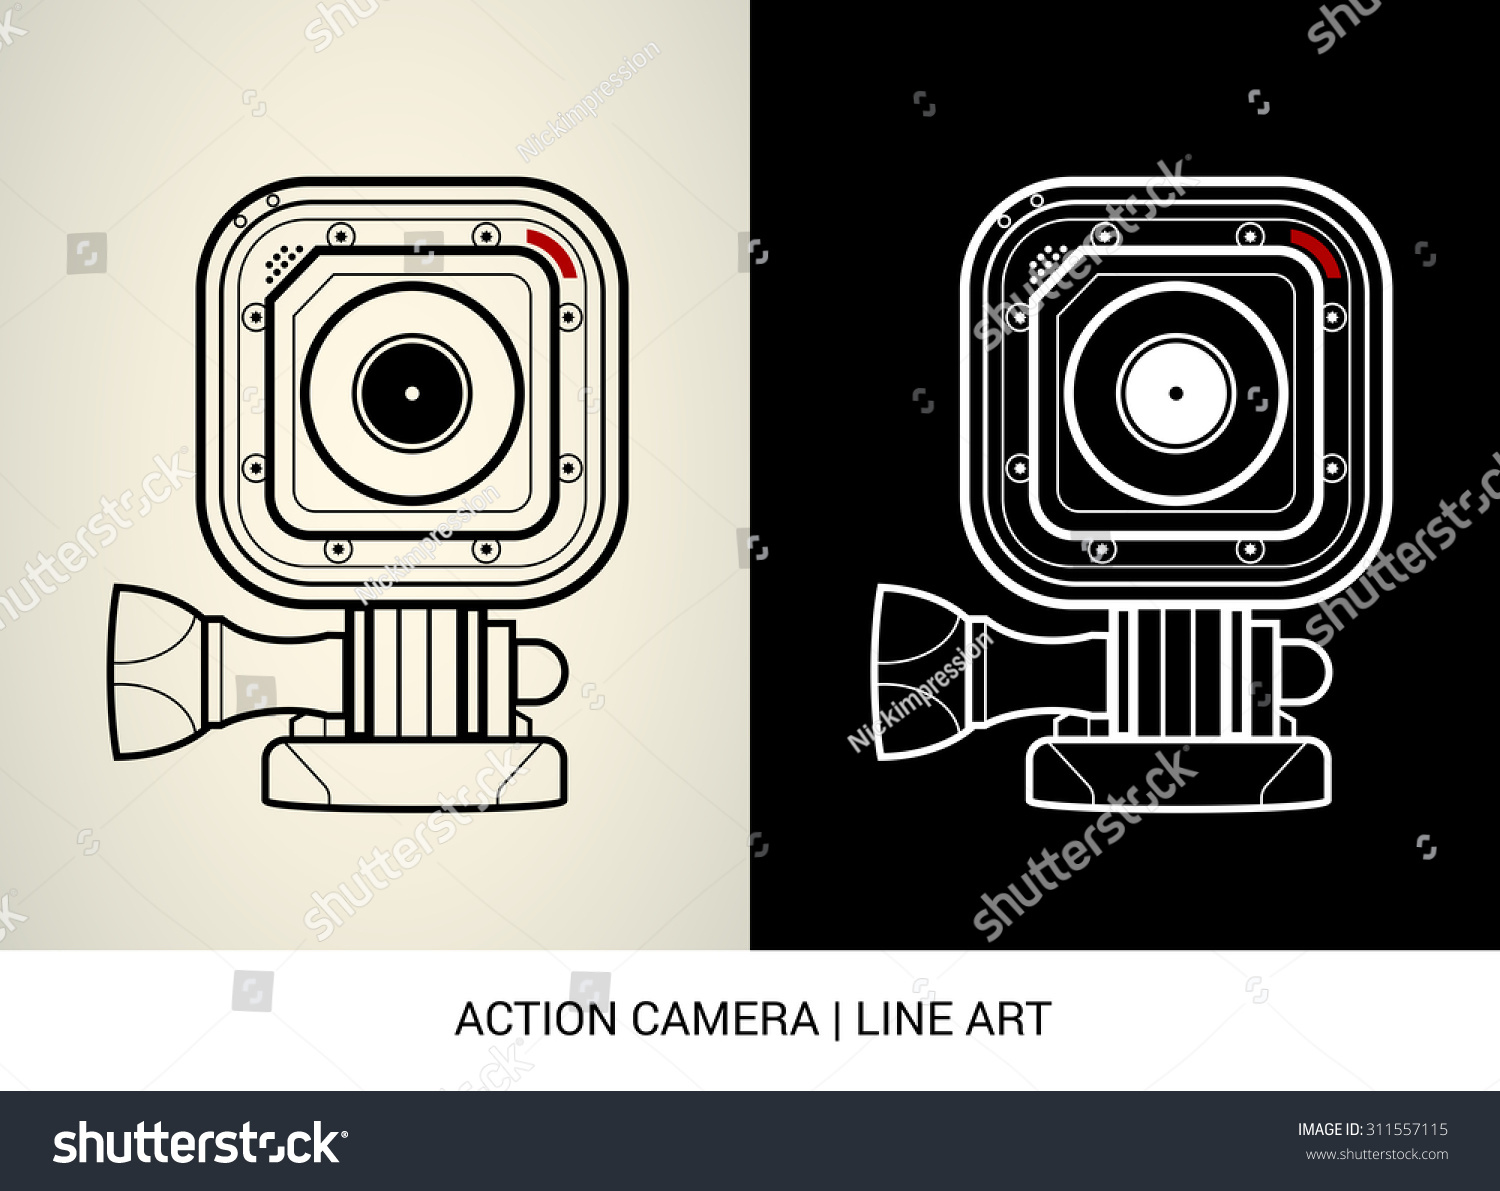 Line Art Action Photo : Vector line art action camera stock